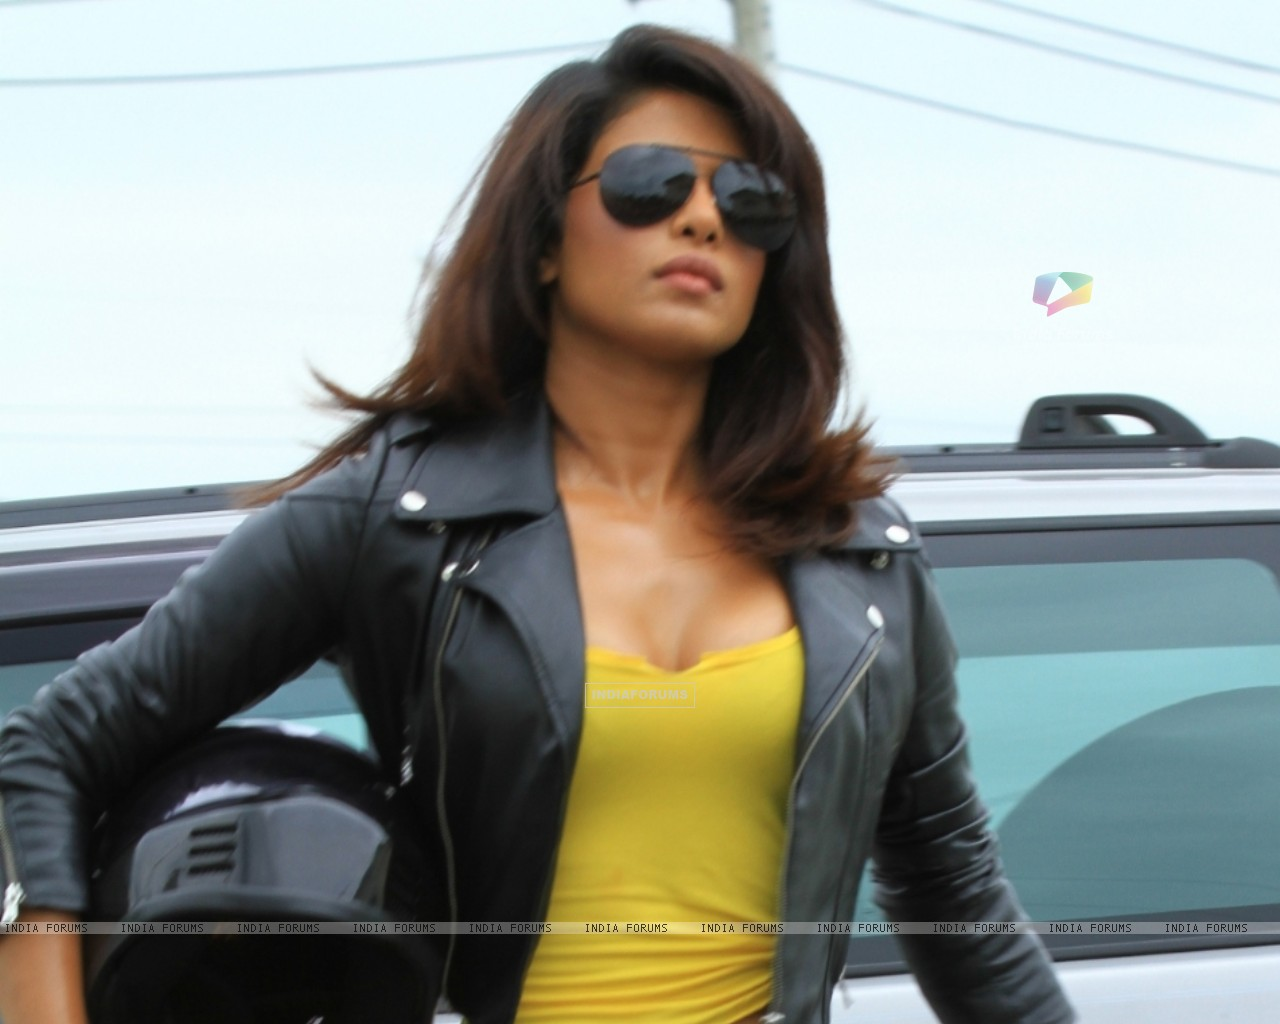 Priyanka Chopra as a host in Fear Factor - Khatron Ke Khiladi x 3 (96053) size:1280x1024